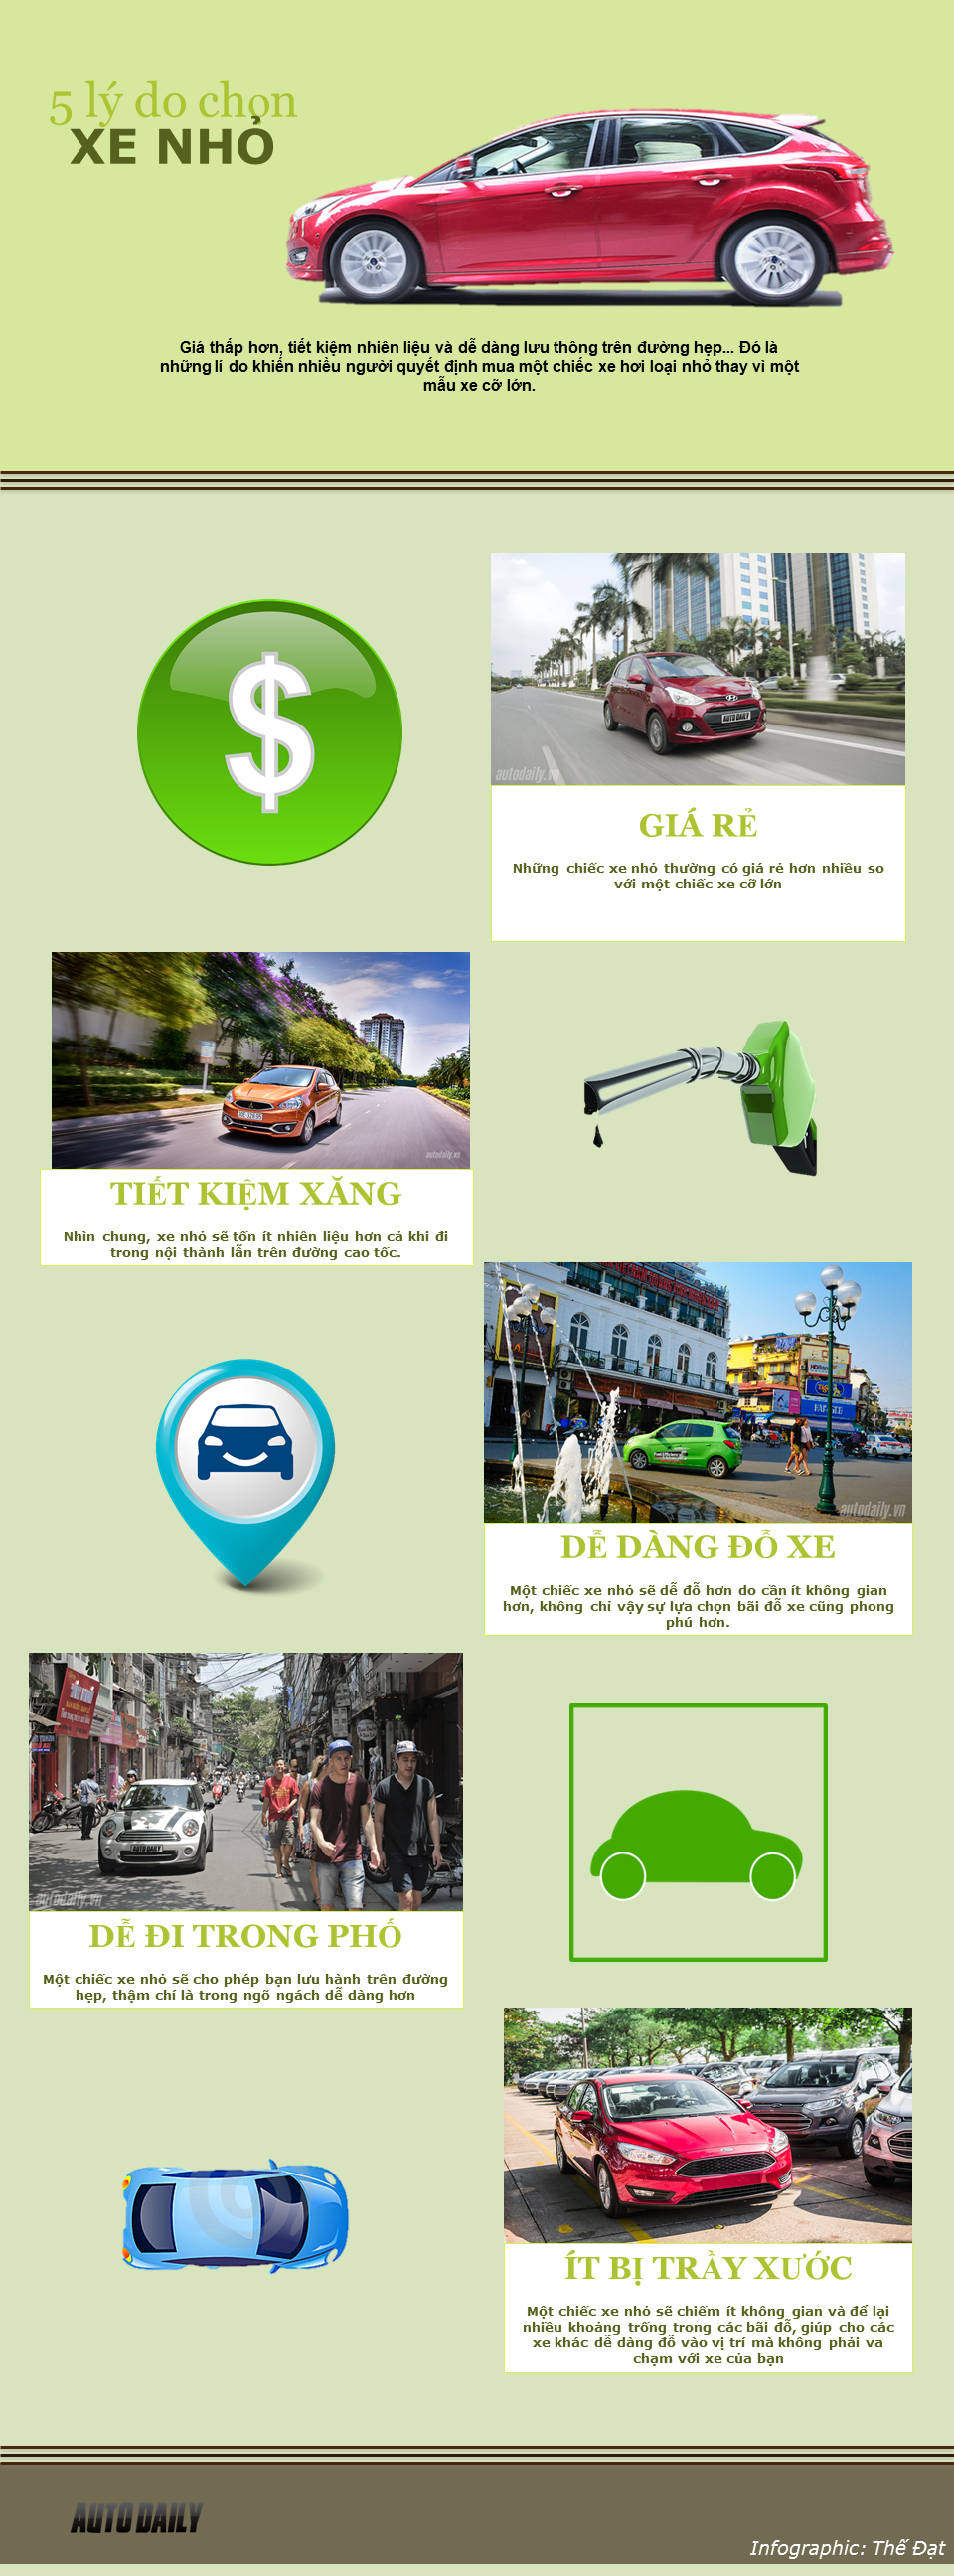 xe-nho-infographic-2.png